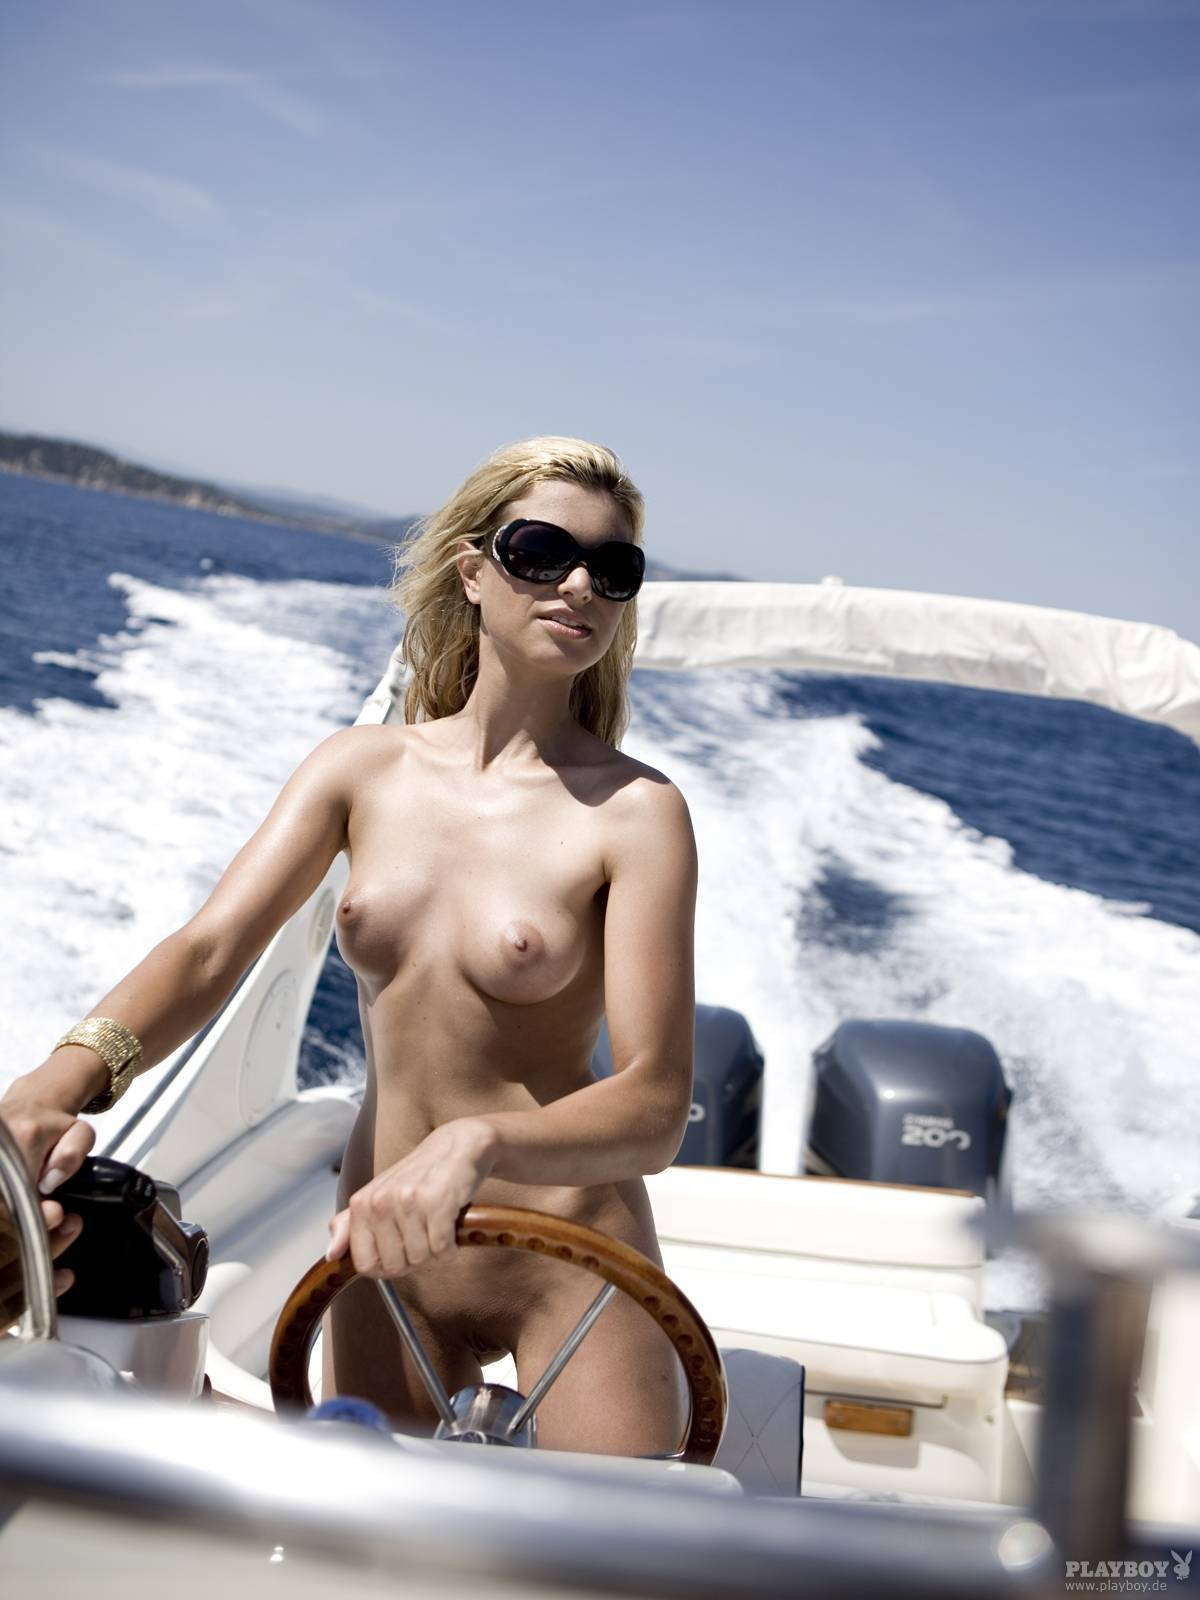 Naked babe in boat what phrase